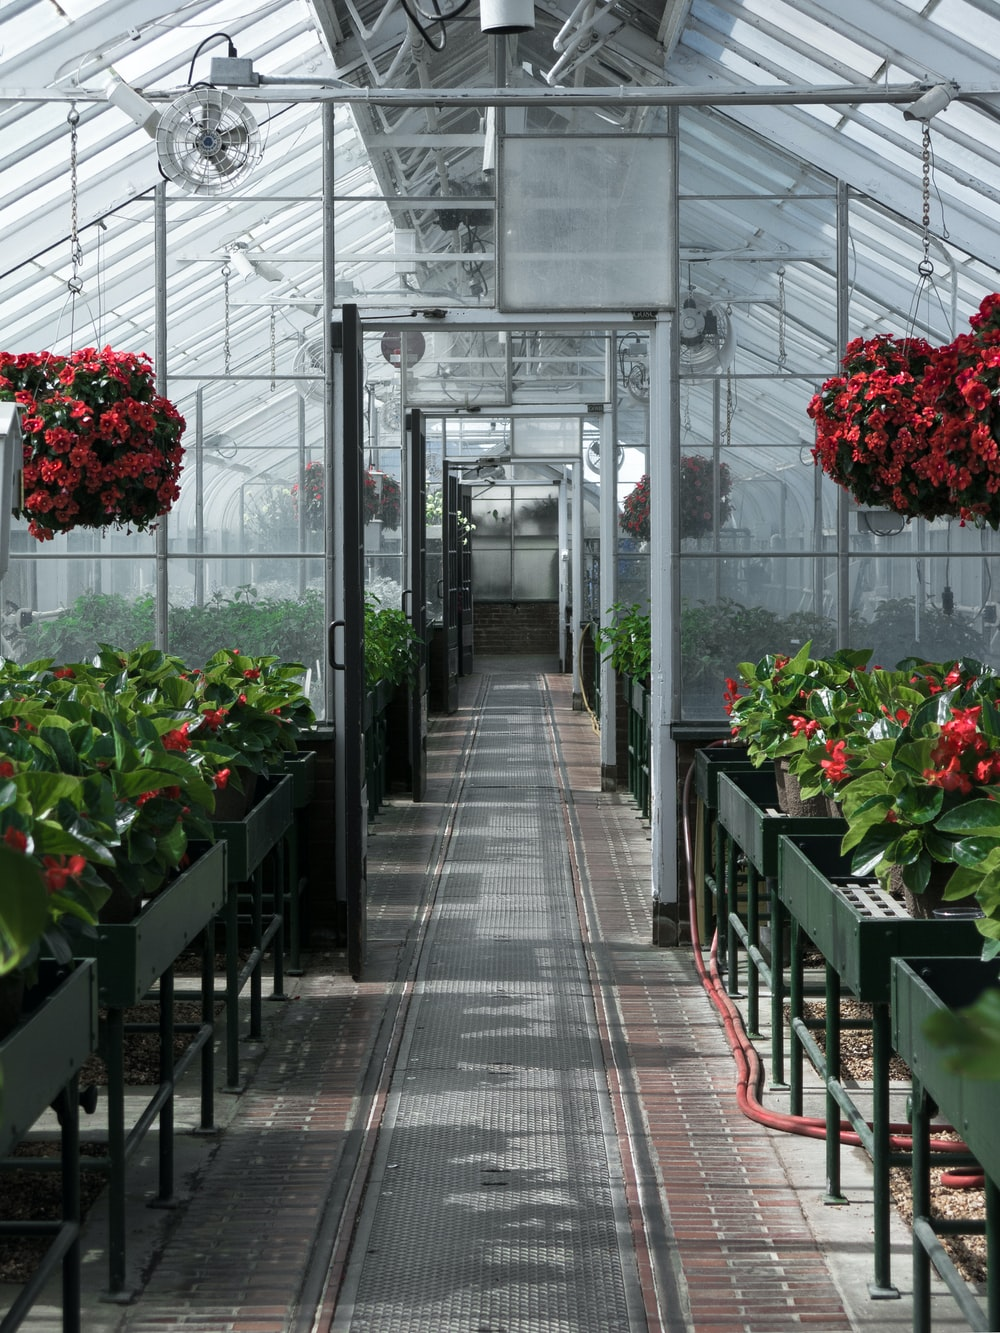 red flowers in green plants